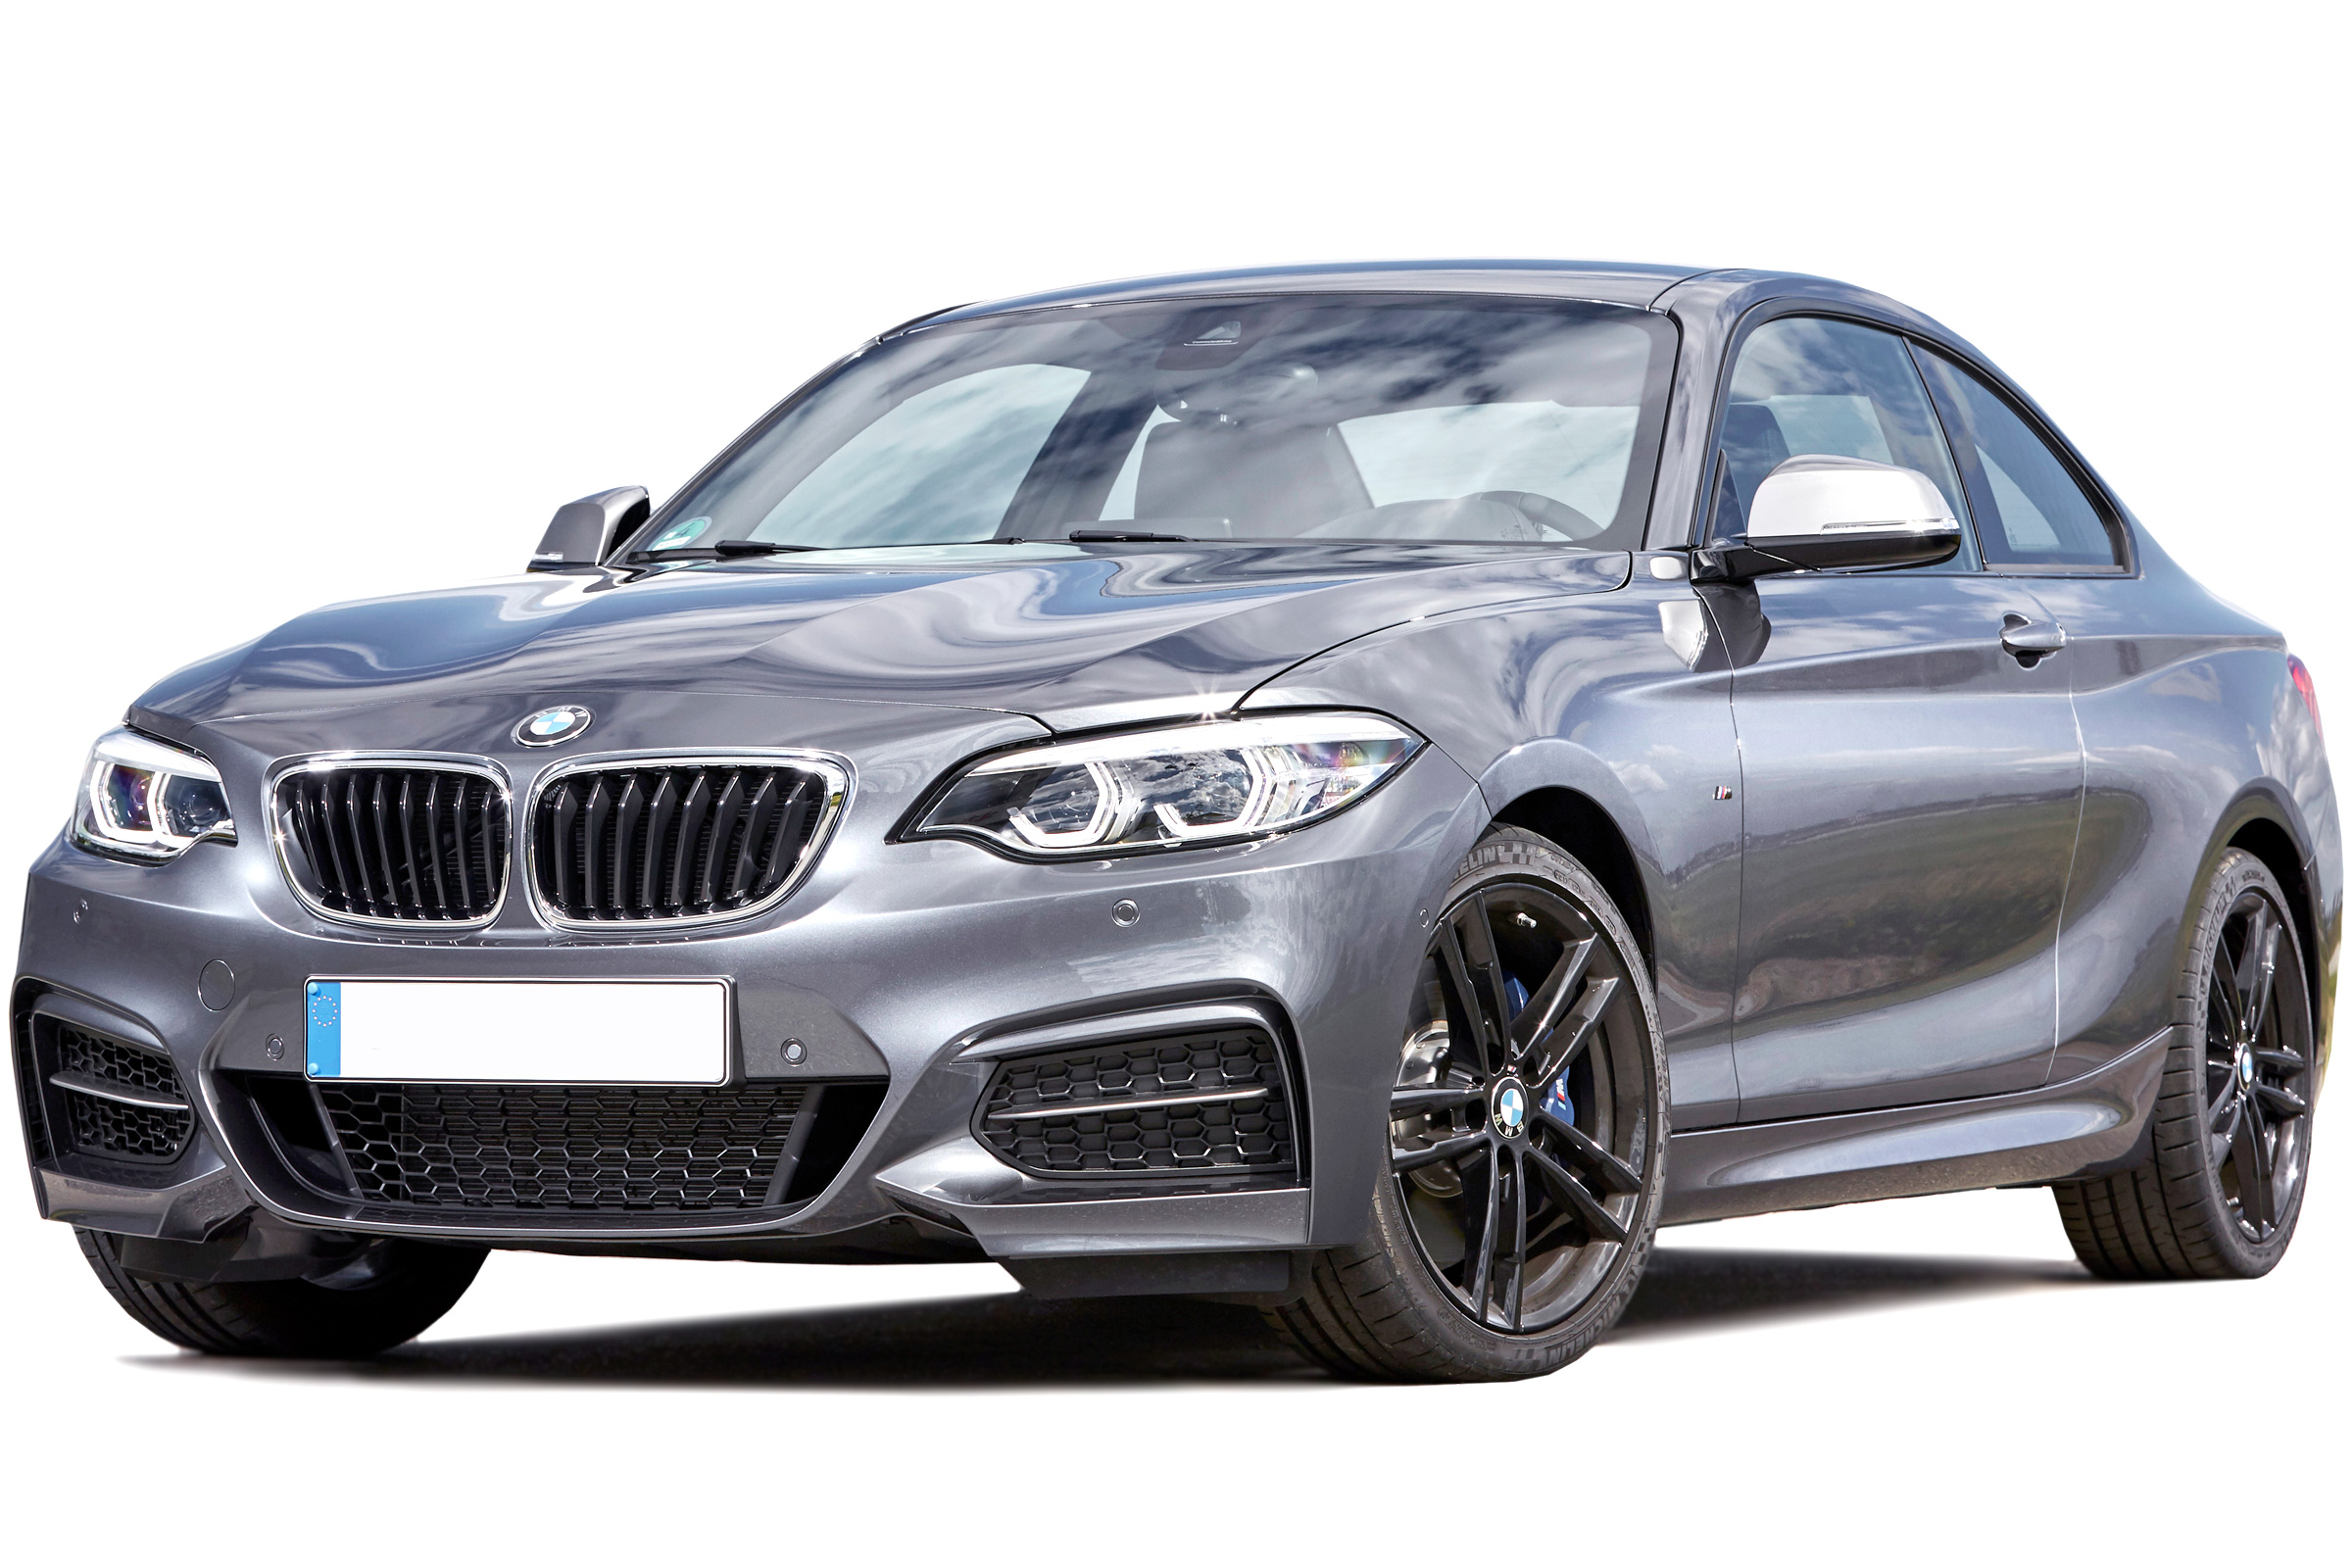 Bmw 2 Series Coupe 2020 Review Carbuyer